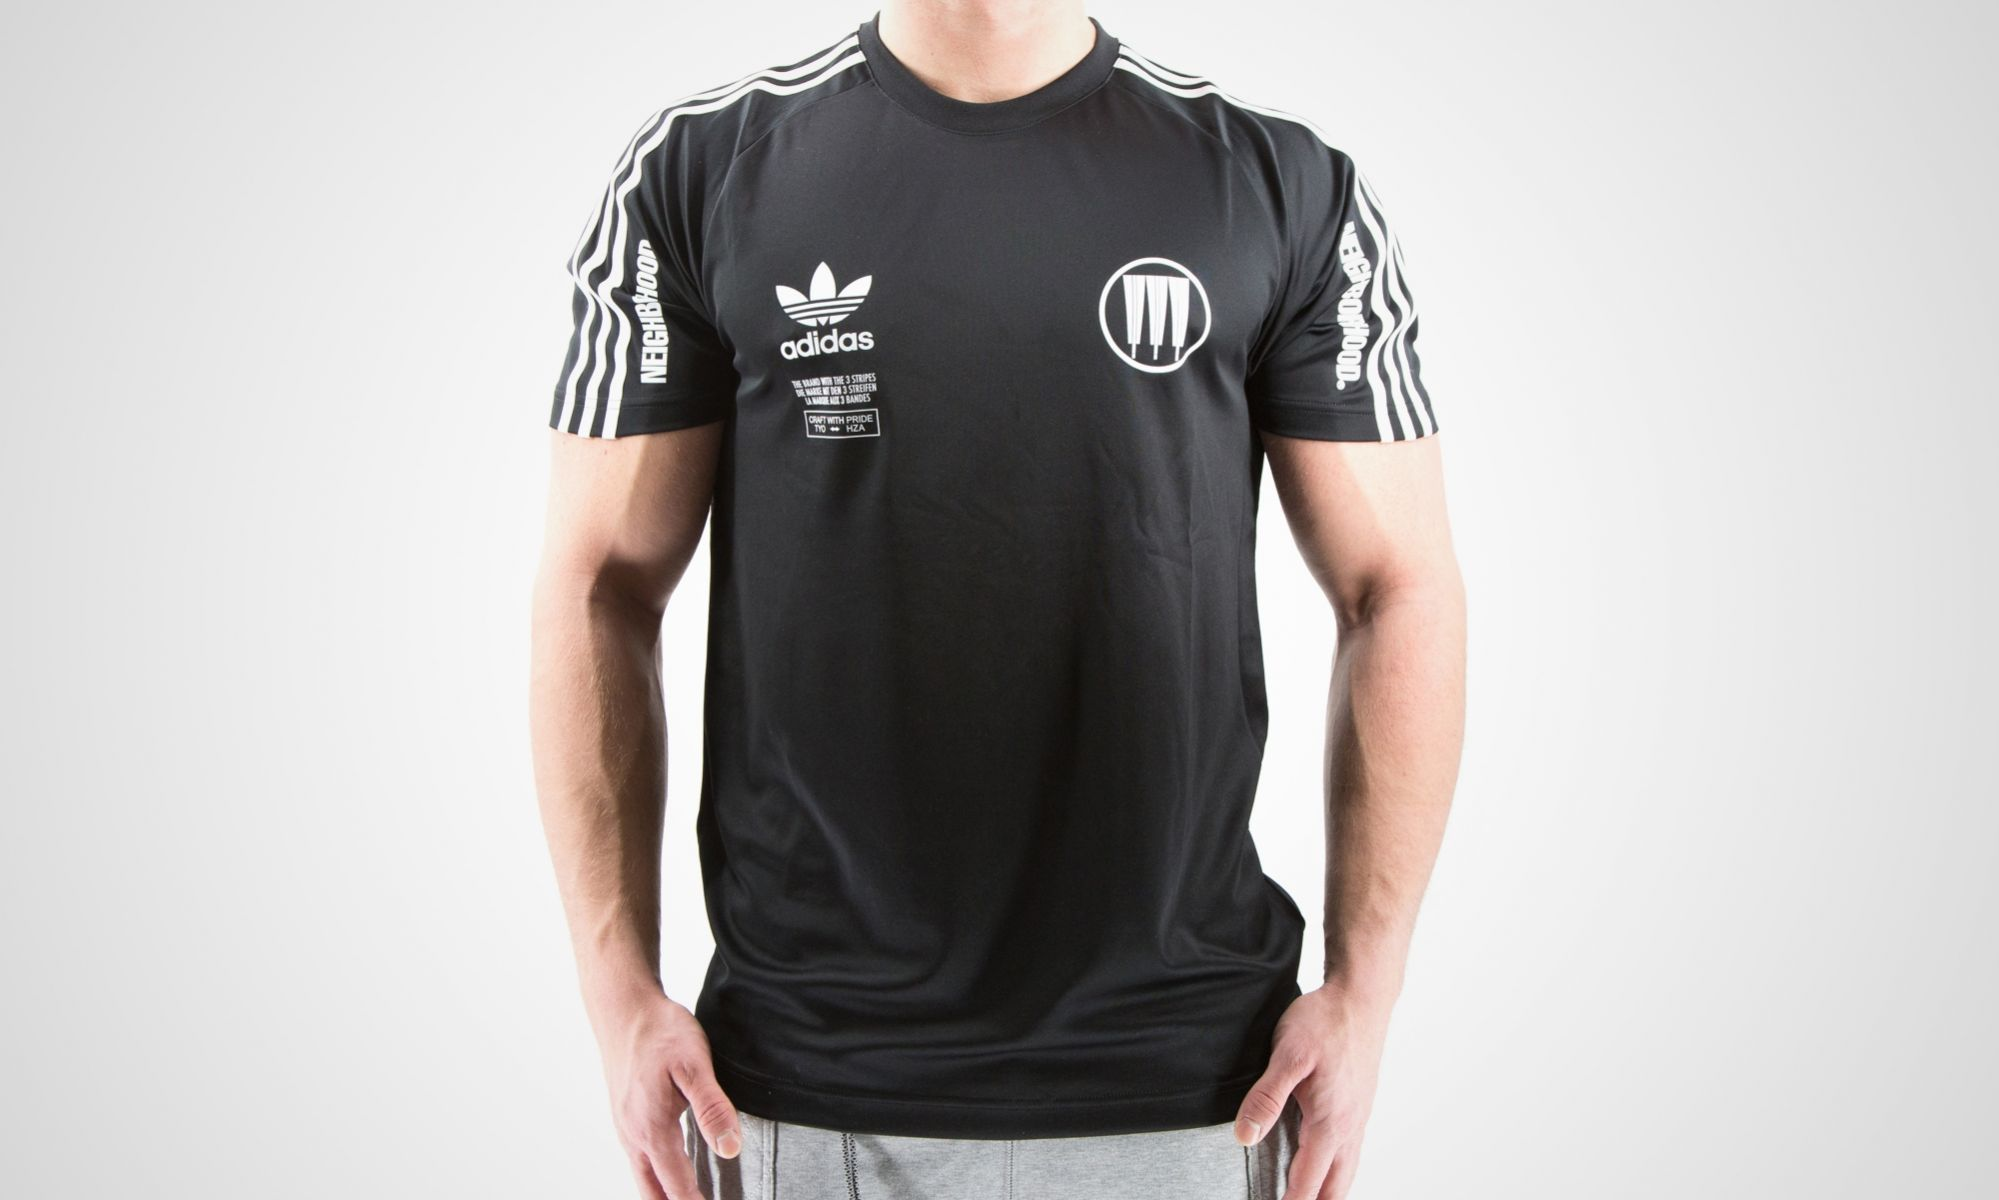 adidas-cd7729-nh-game-jersey-shirt-1